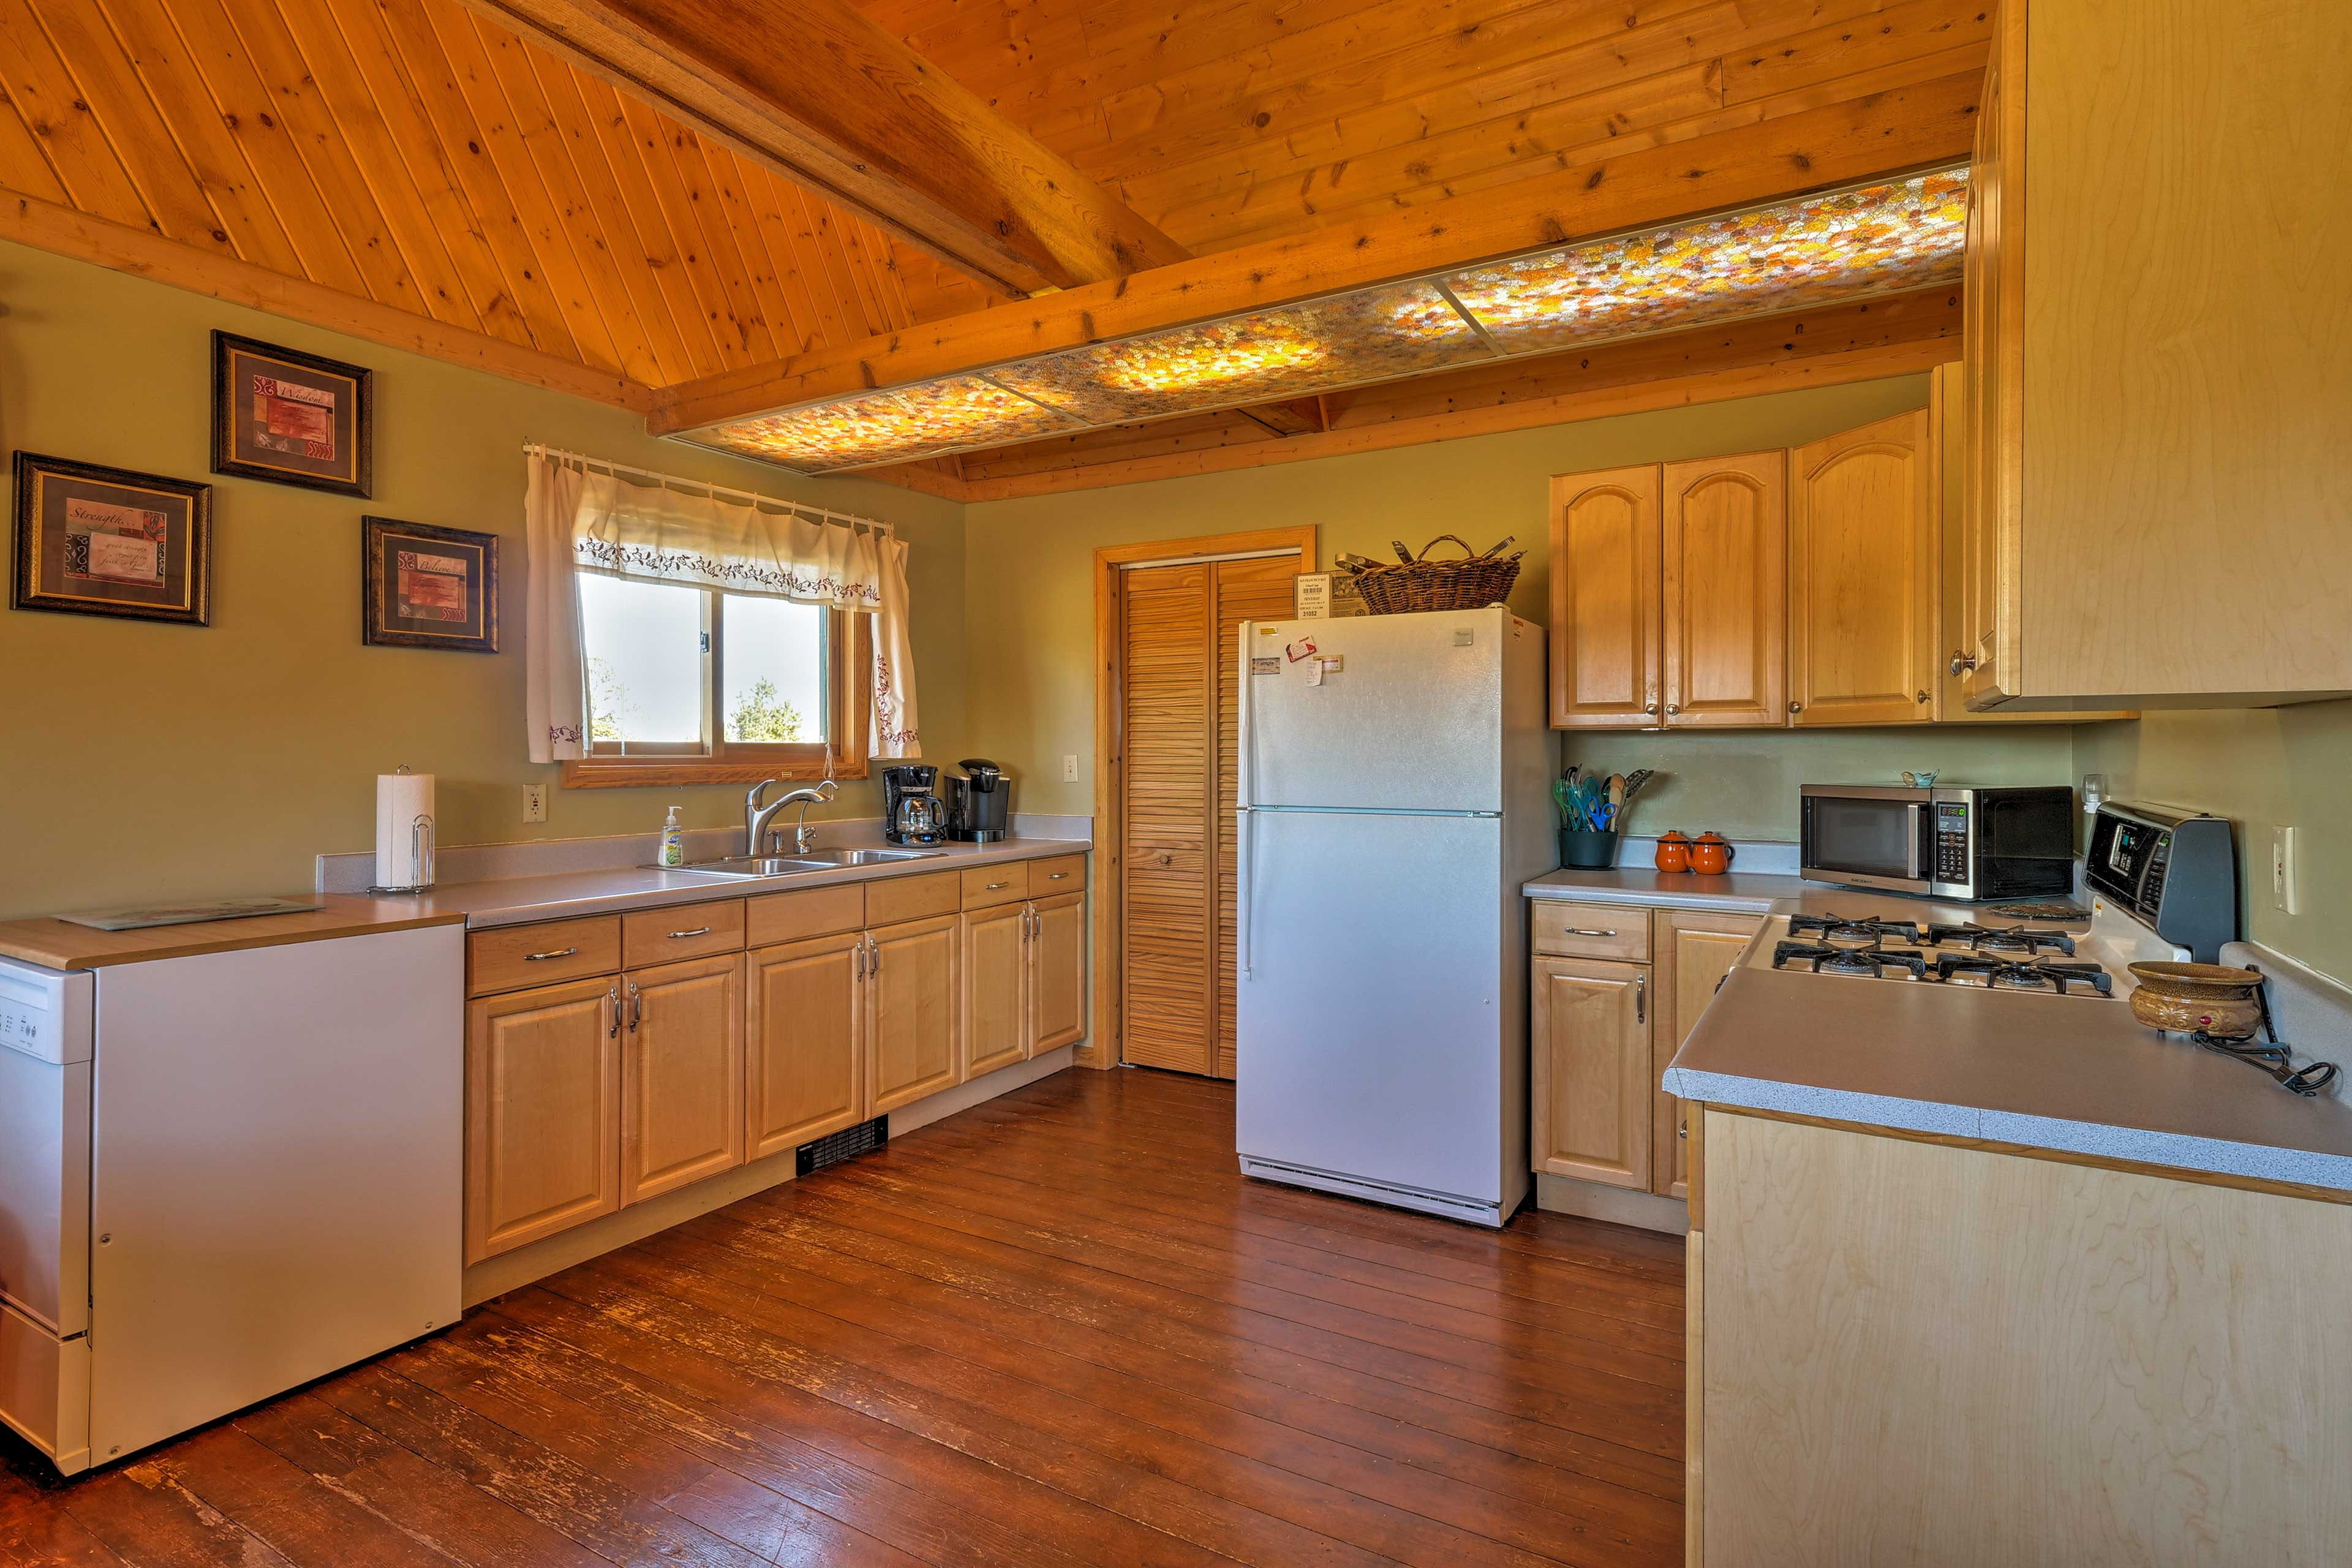 This kitchen is fully equipped to provide convenient meal preparations.